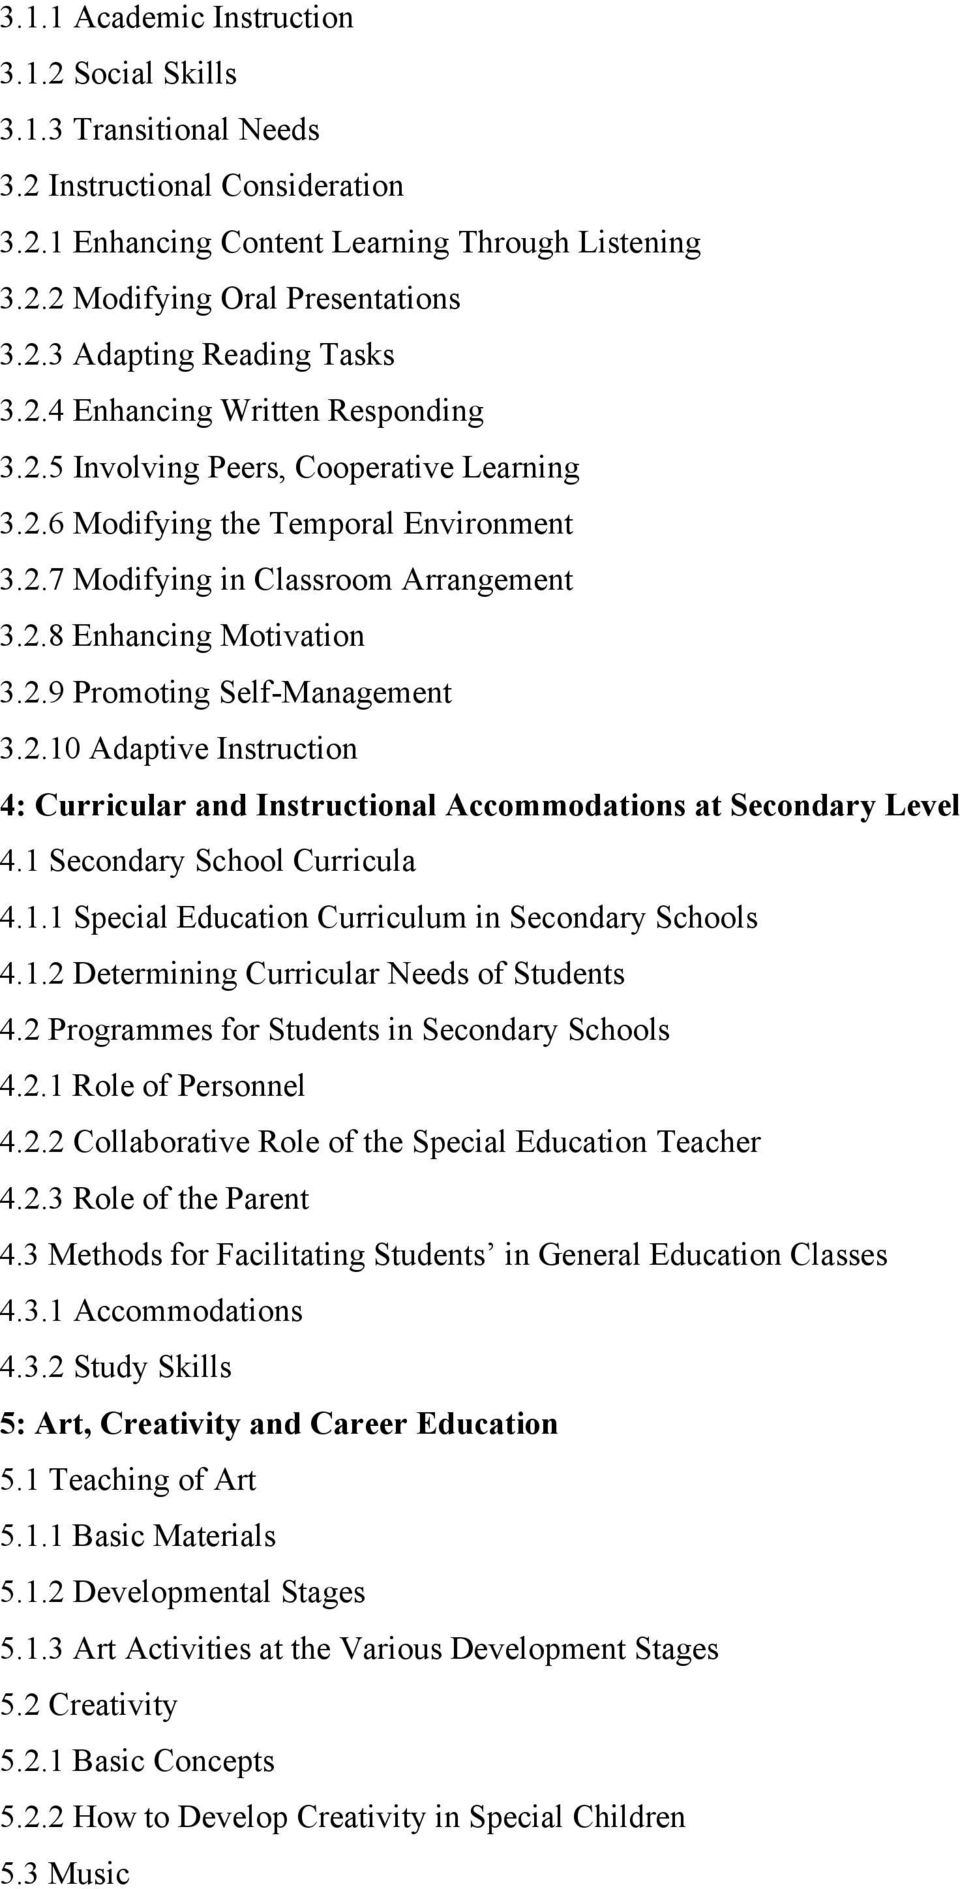 2.10 Adaptive Instruction 4: Curricular and Instructional Accommodations at Secondary Level 4.1 Secondary School Curricula 4.1.1 Special Education Curriculum in Secondary Schools 4.1.2 Determining Curricular Needs of Students 4.